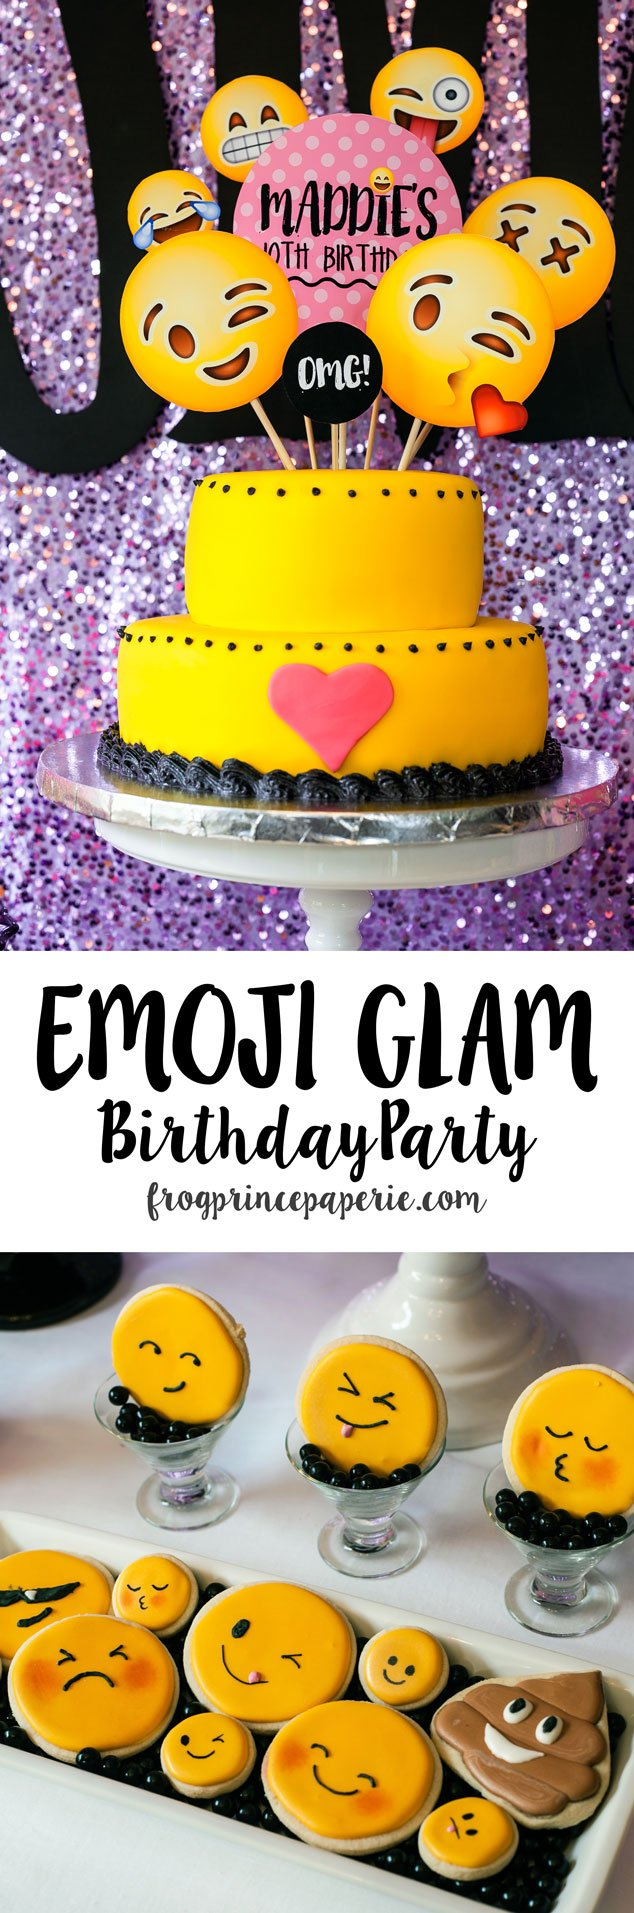 Glam Emoji Birthday Party Ideas - Page 2 of 3 - Frog Prince Paperie